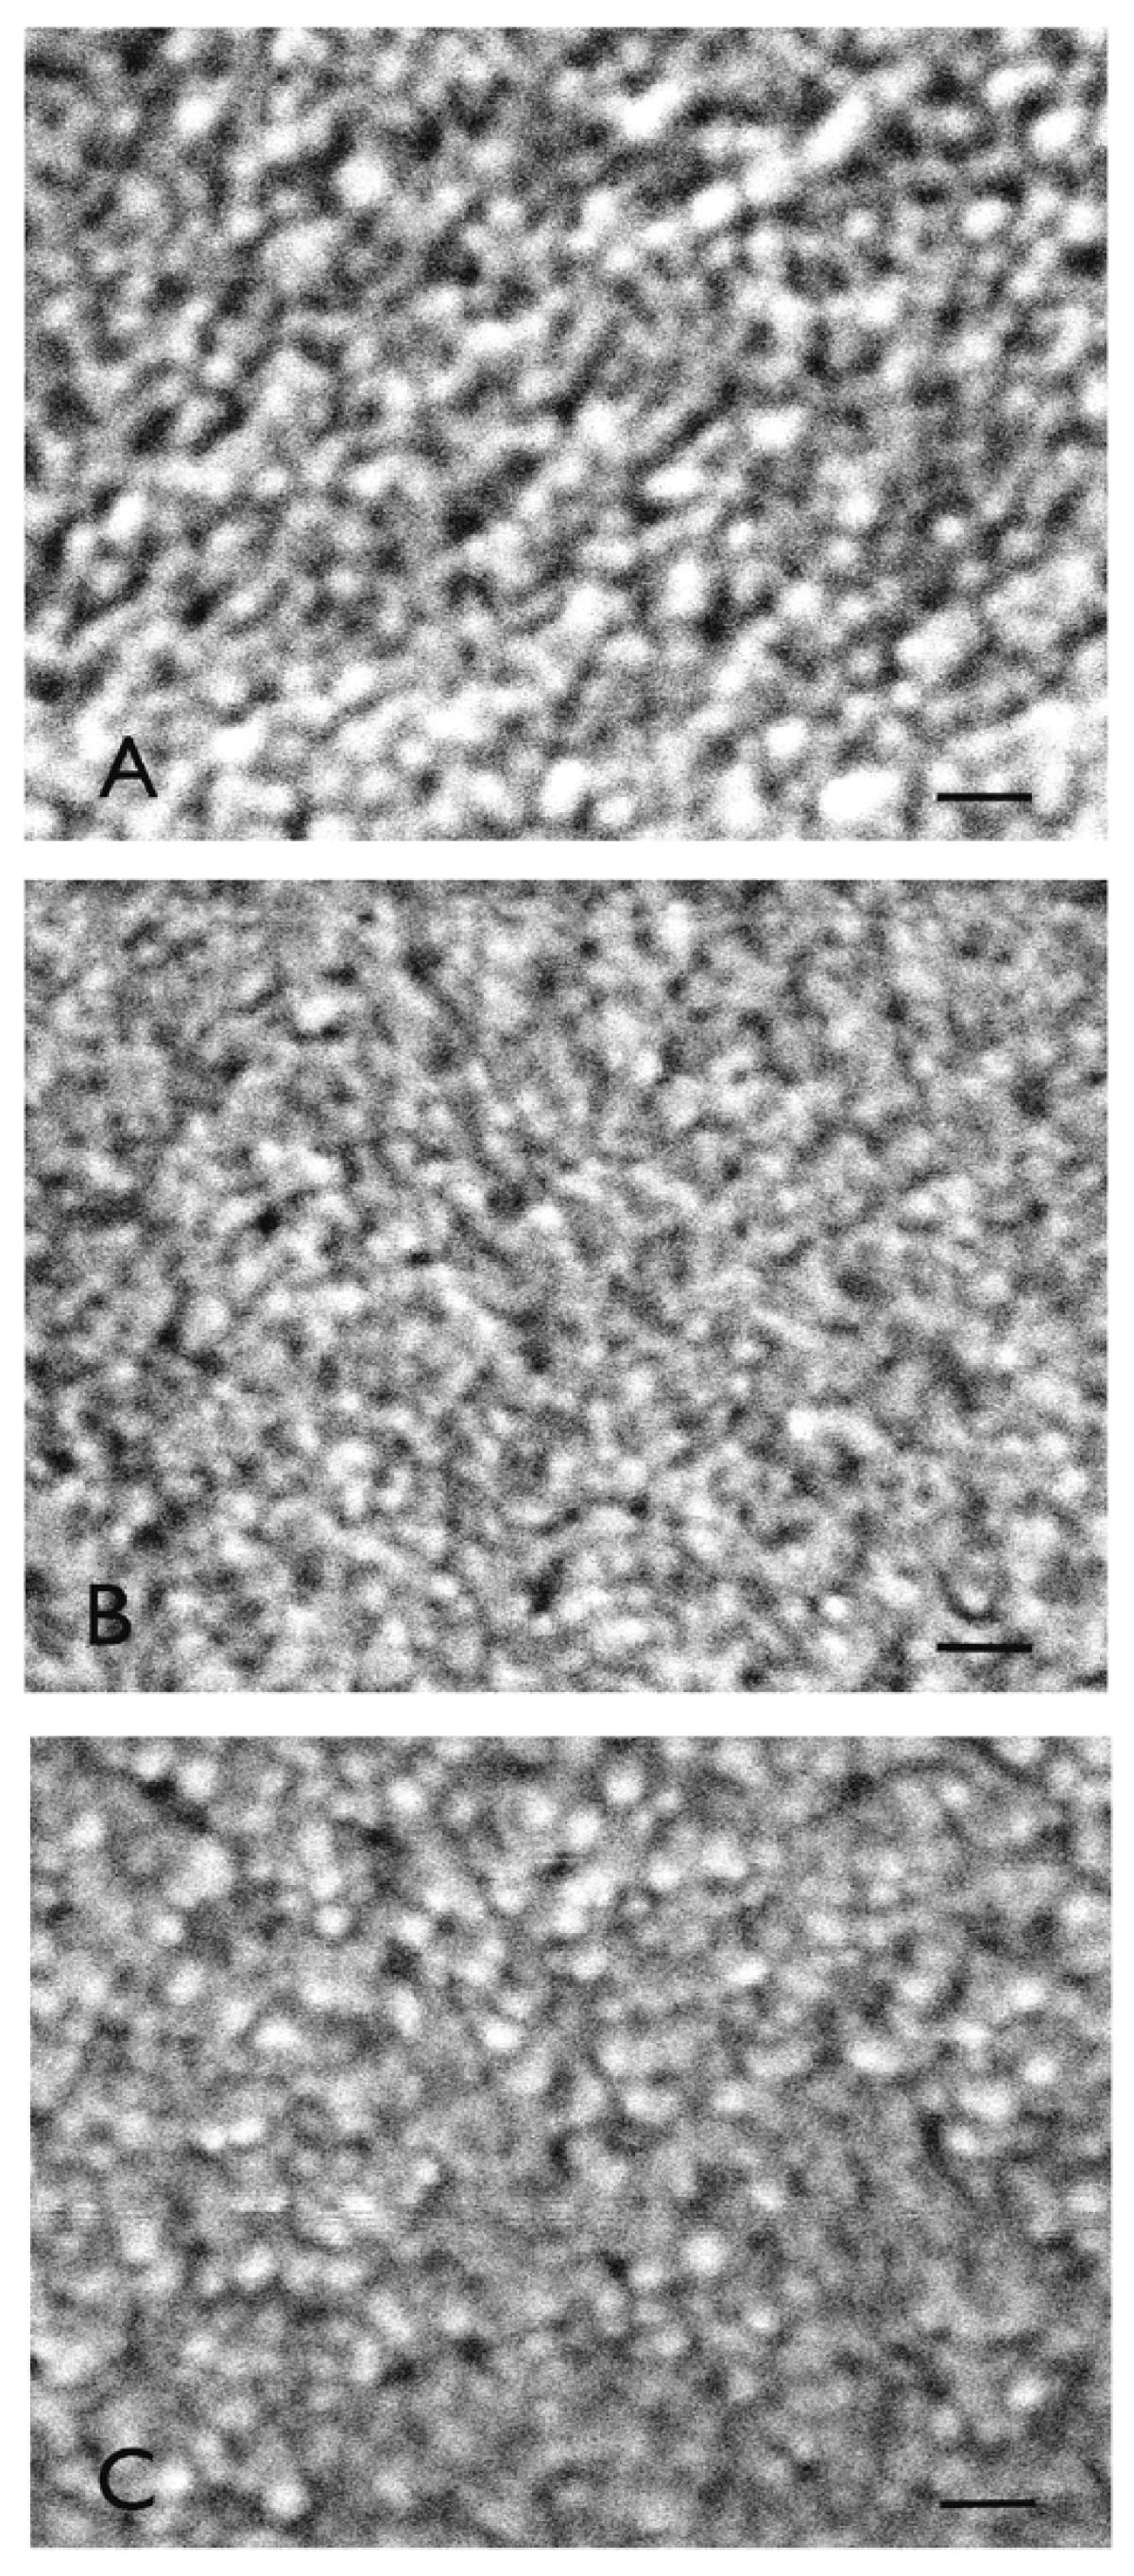 https://static-content.springer.com/image/art%3A10.1186%2F1754-1611-5-4/MediaObjects/13036_2010_Article_68_Fig5_HTML.jpg